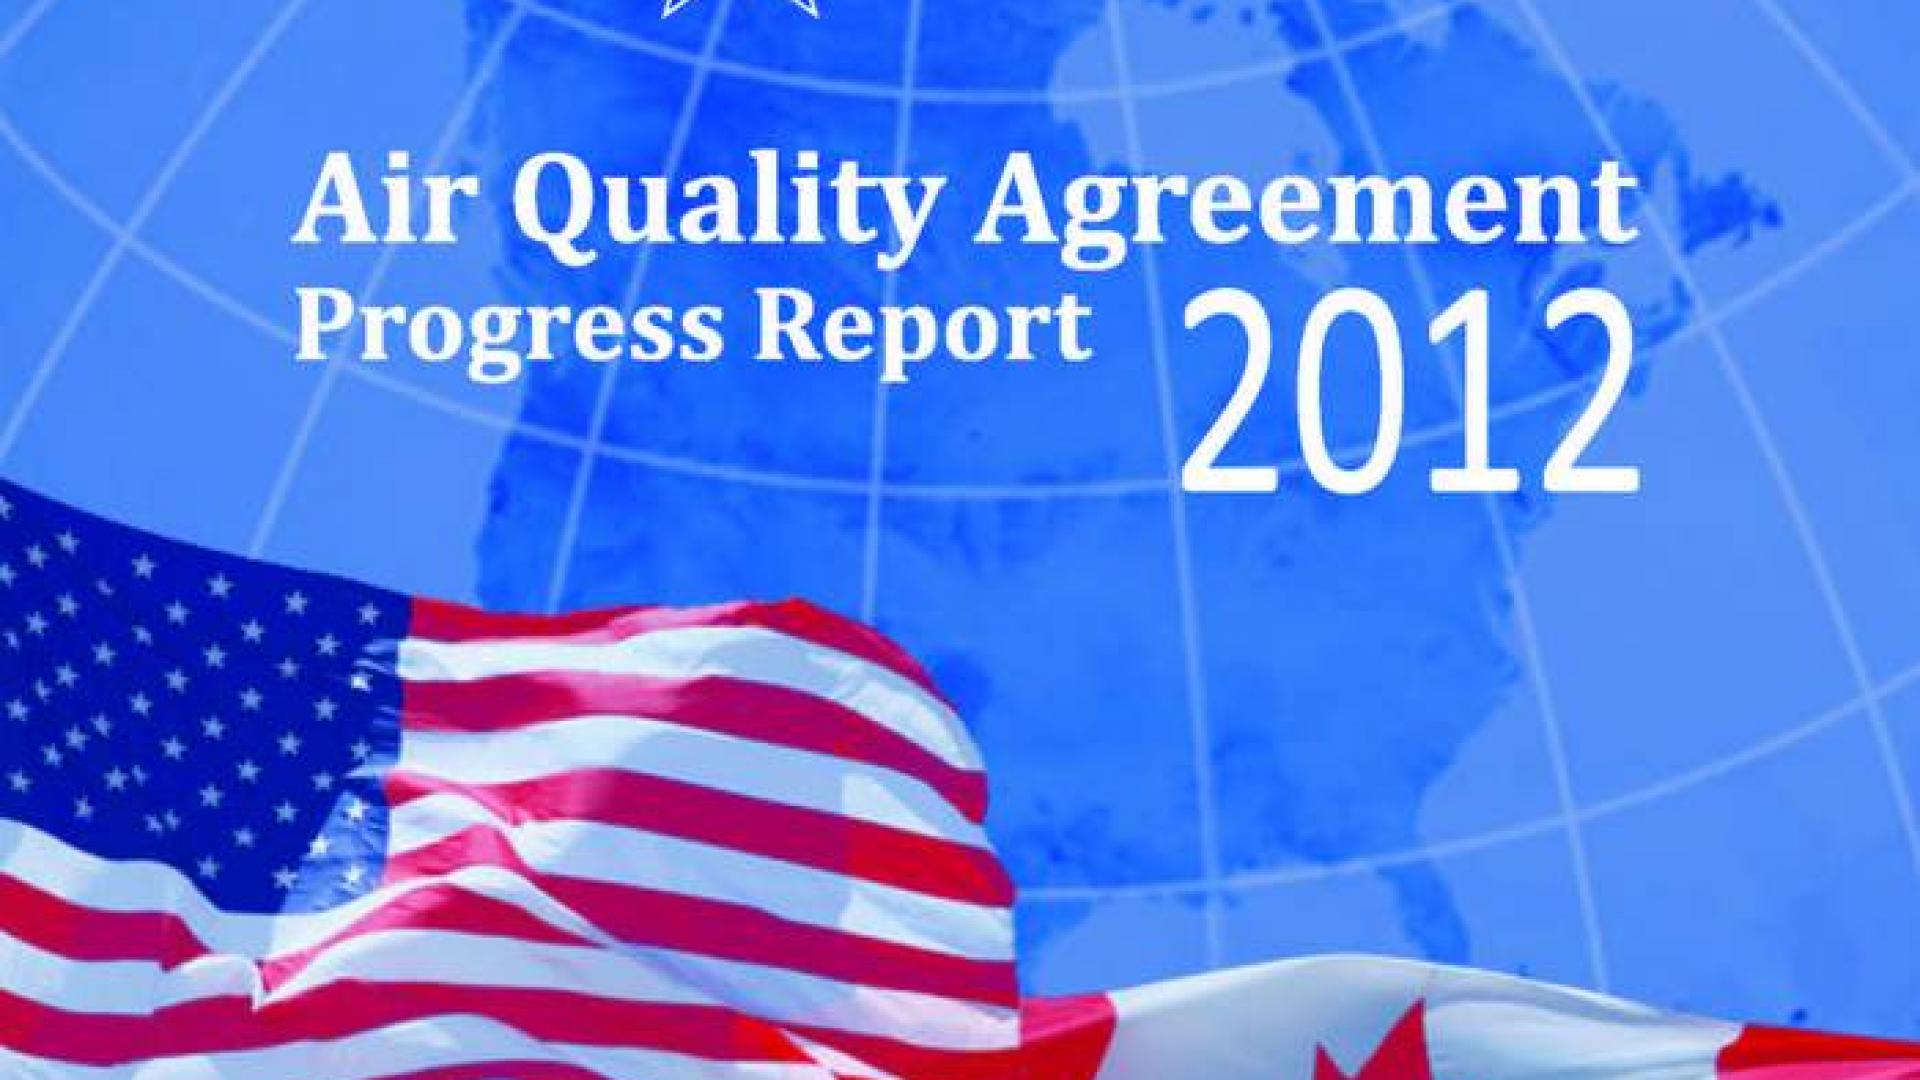 Air Quality Agreement Progress Report 2012 cover